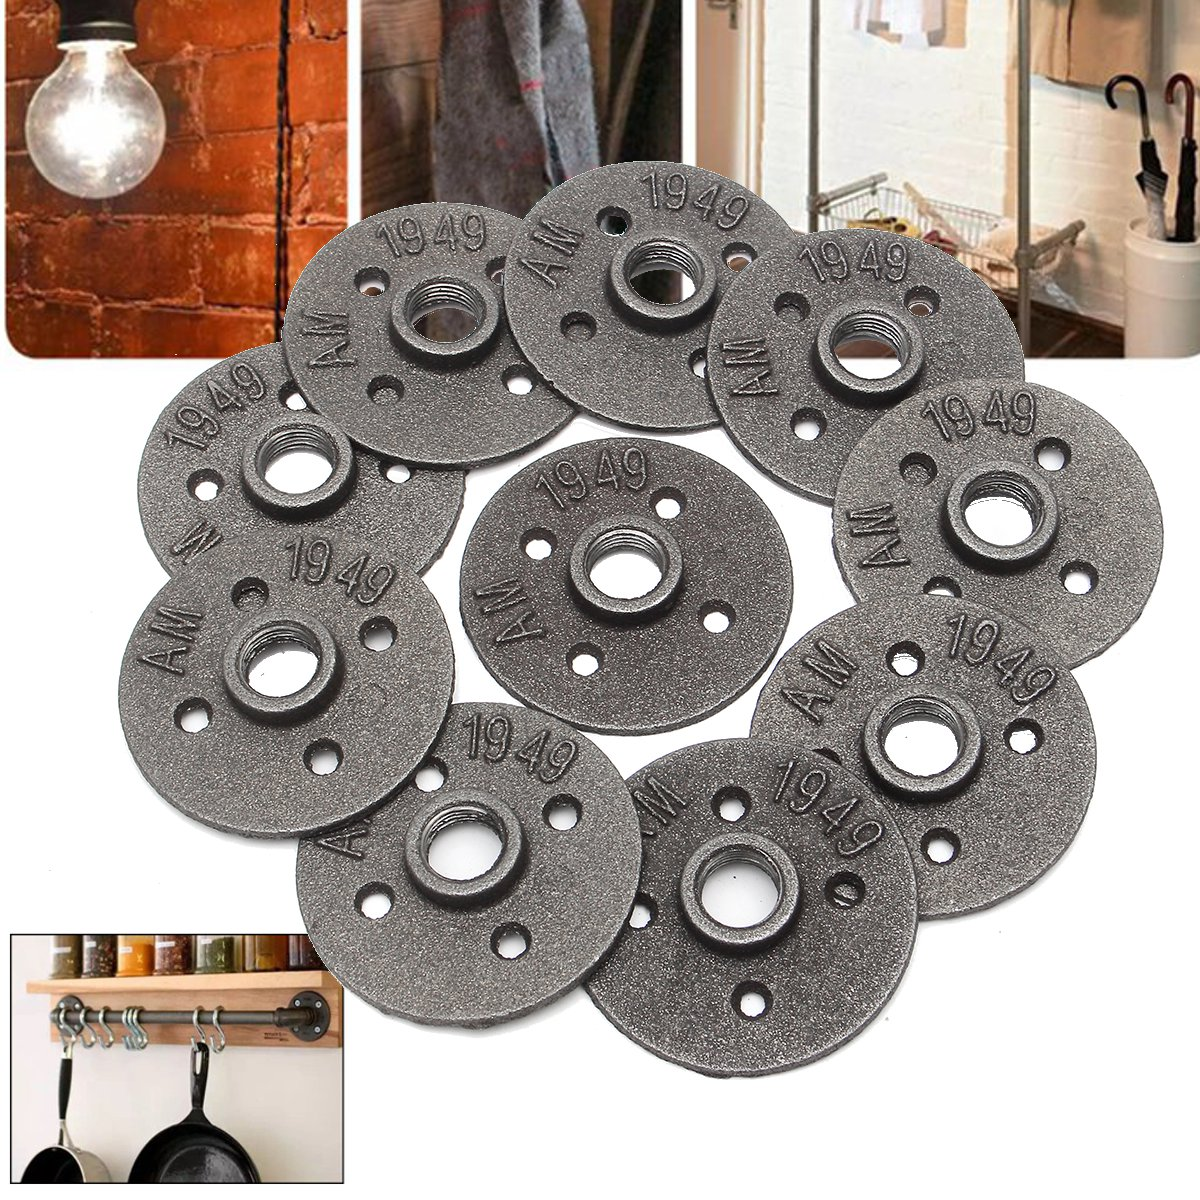 10Pcs 1//2-INCH Floor Flange Industrial Steel Malleable Cast Iron Pipe Fittings